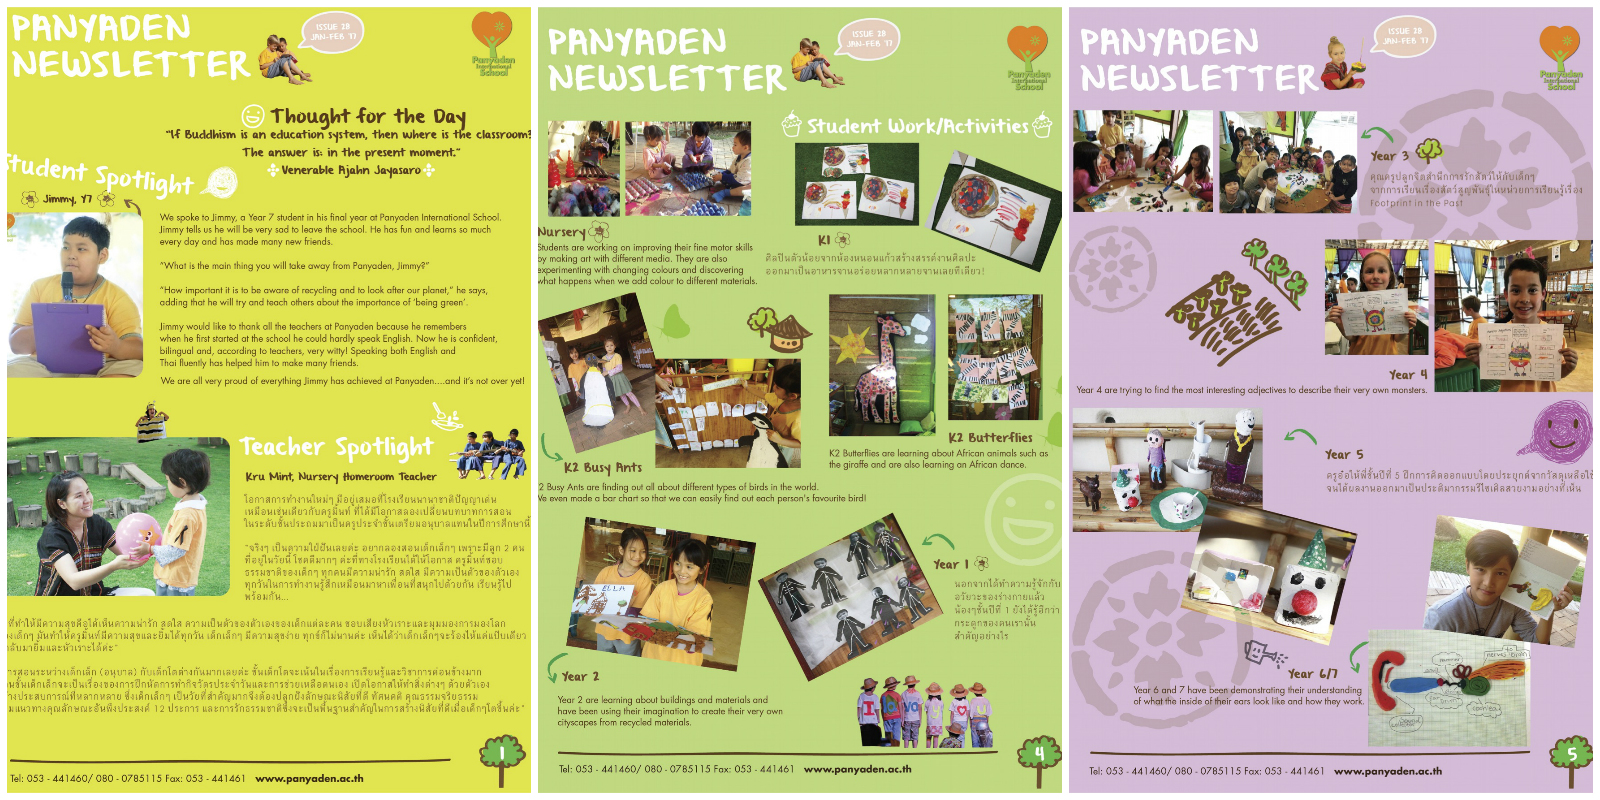 Panyaden newsletter issue 28 collage